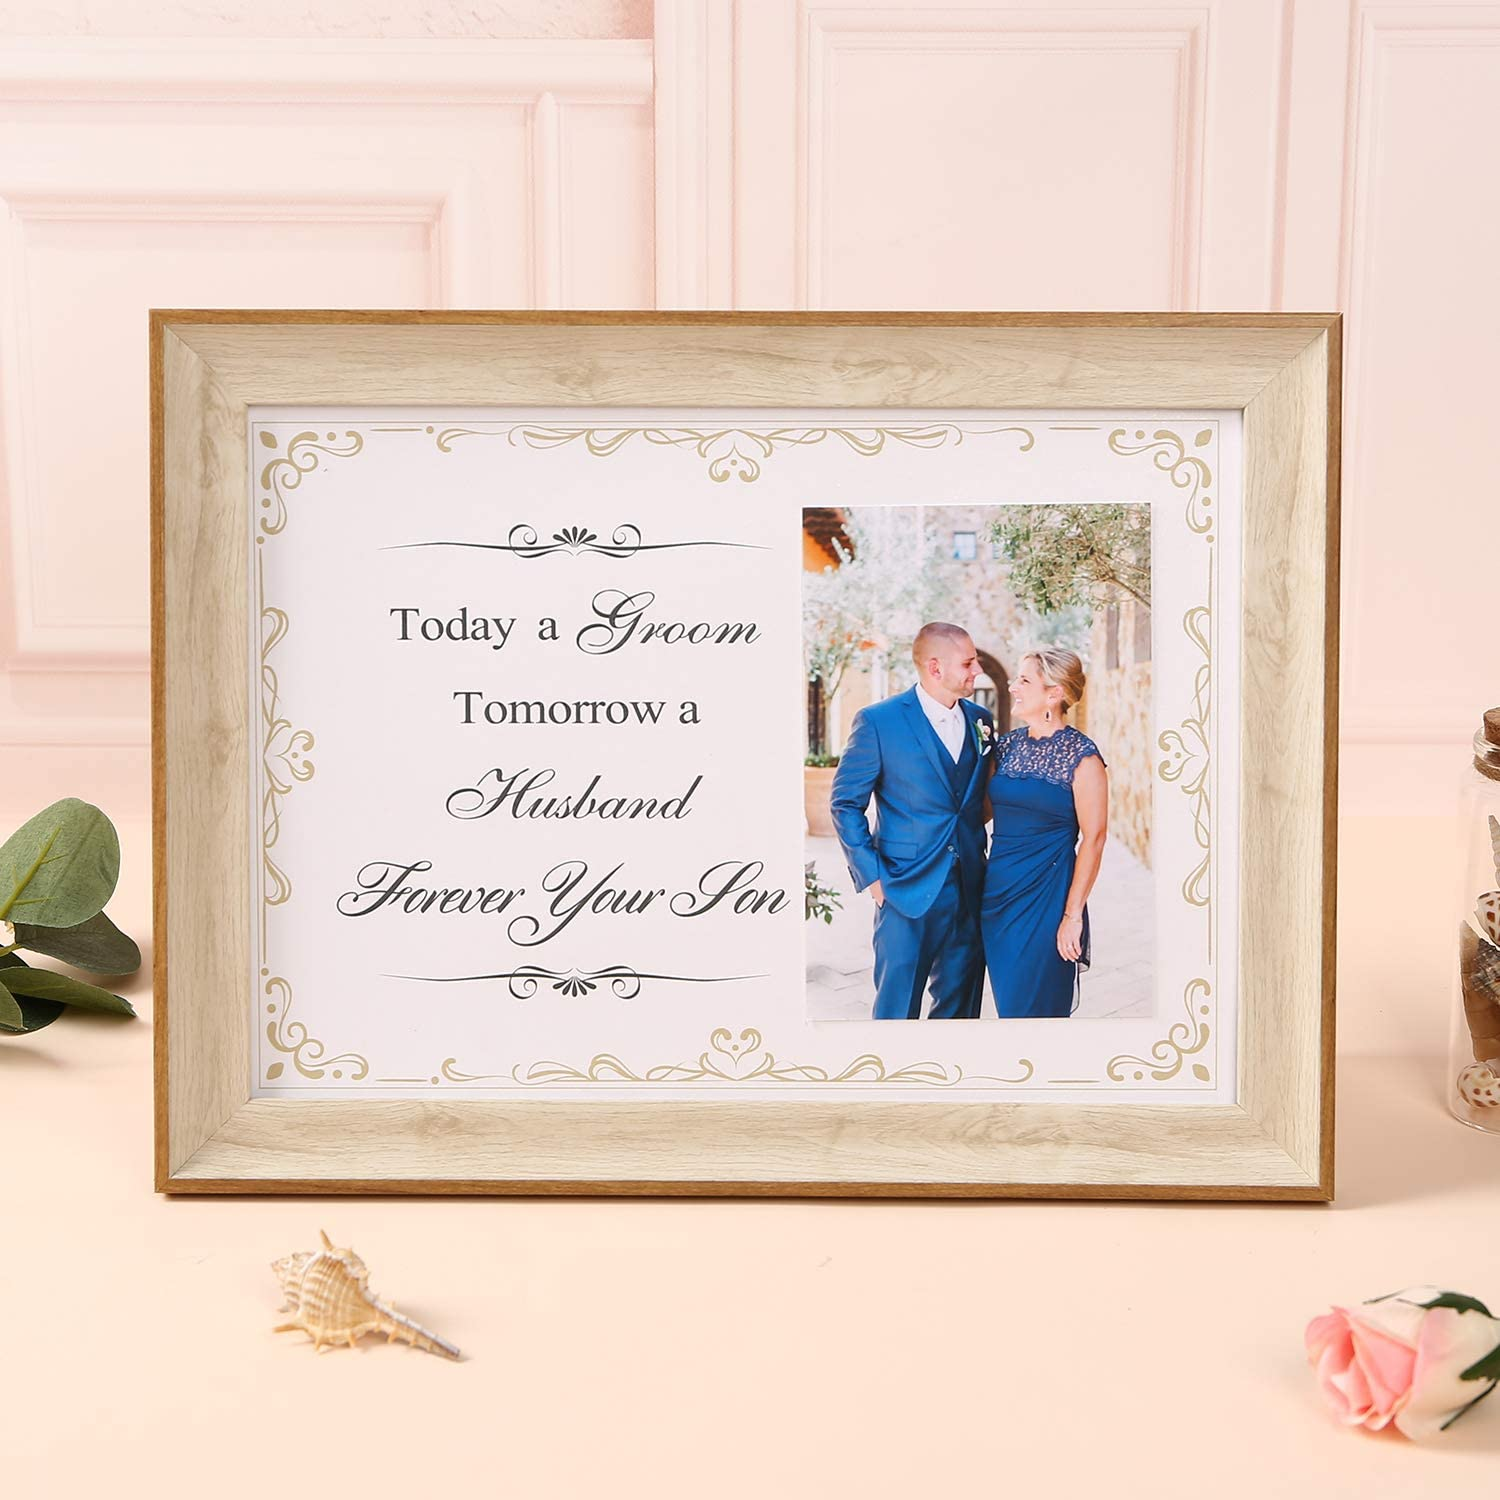 Wedding Thank You Gift For Parents Today A Groom Tomorrow A Husband Forever Your Son Parents Of The Groom Mother Of The Groom Gift